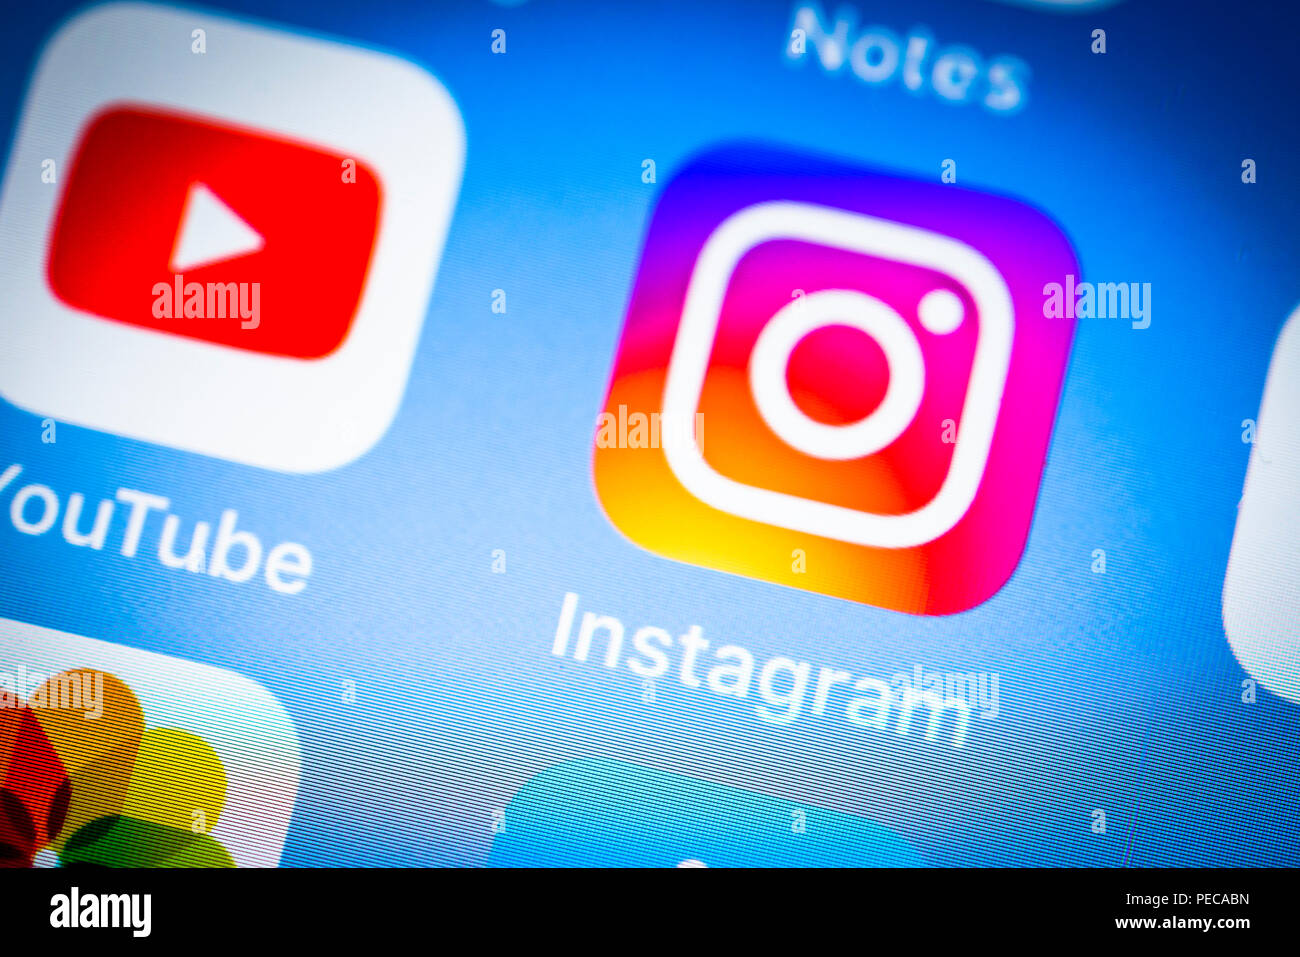 Instagram app icon on iPhone, iOS, social network, smartphone screen, display, close-up, detail, Germany - Stock Image